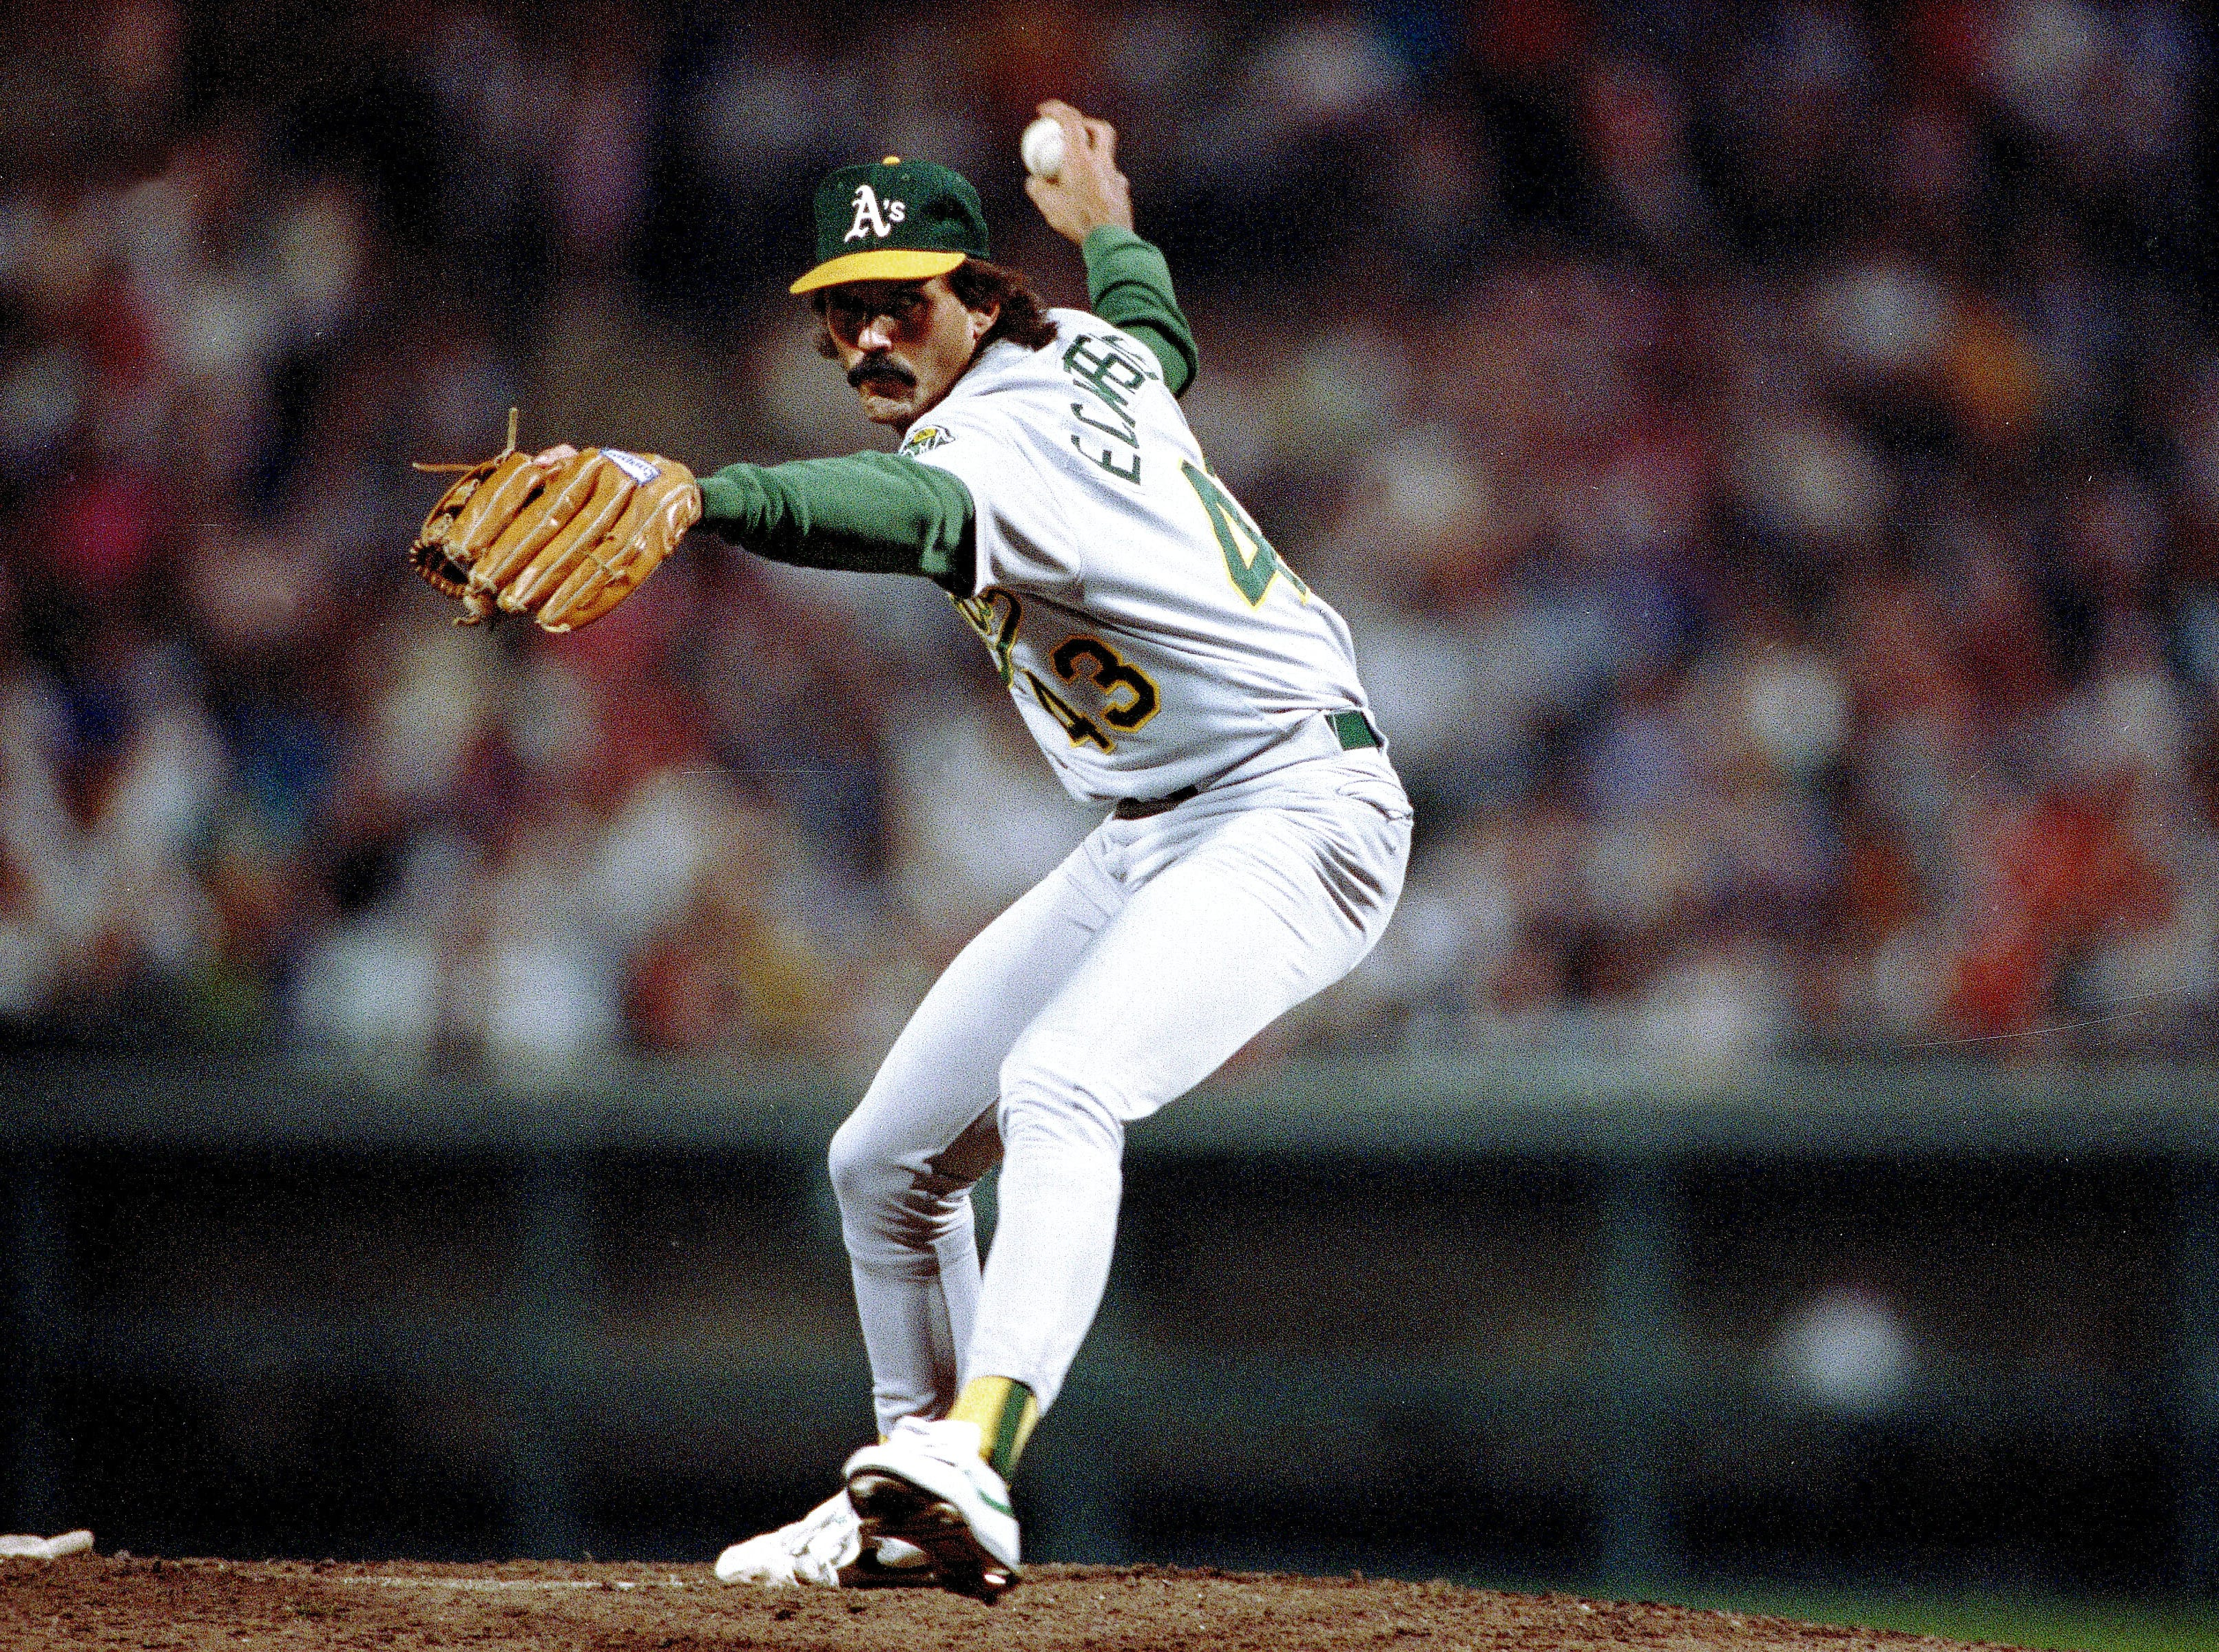 51 – Dennis Eckersley, Athletics, 1992